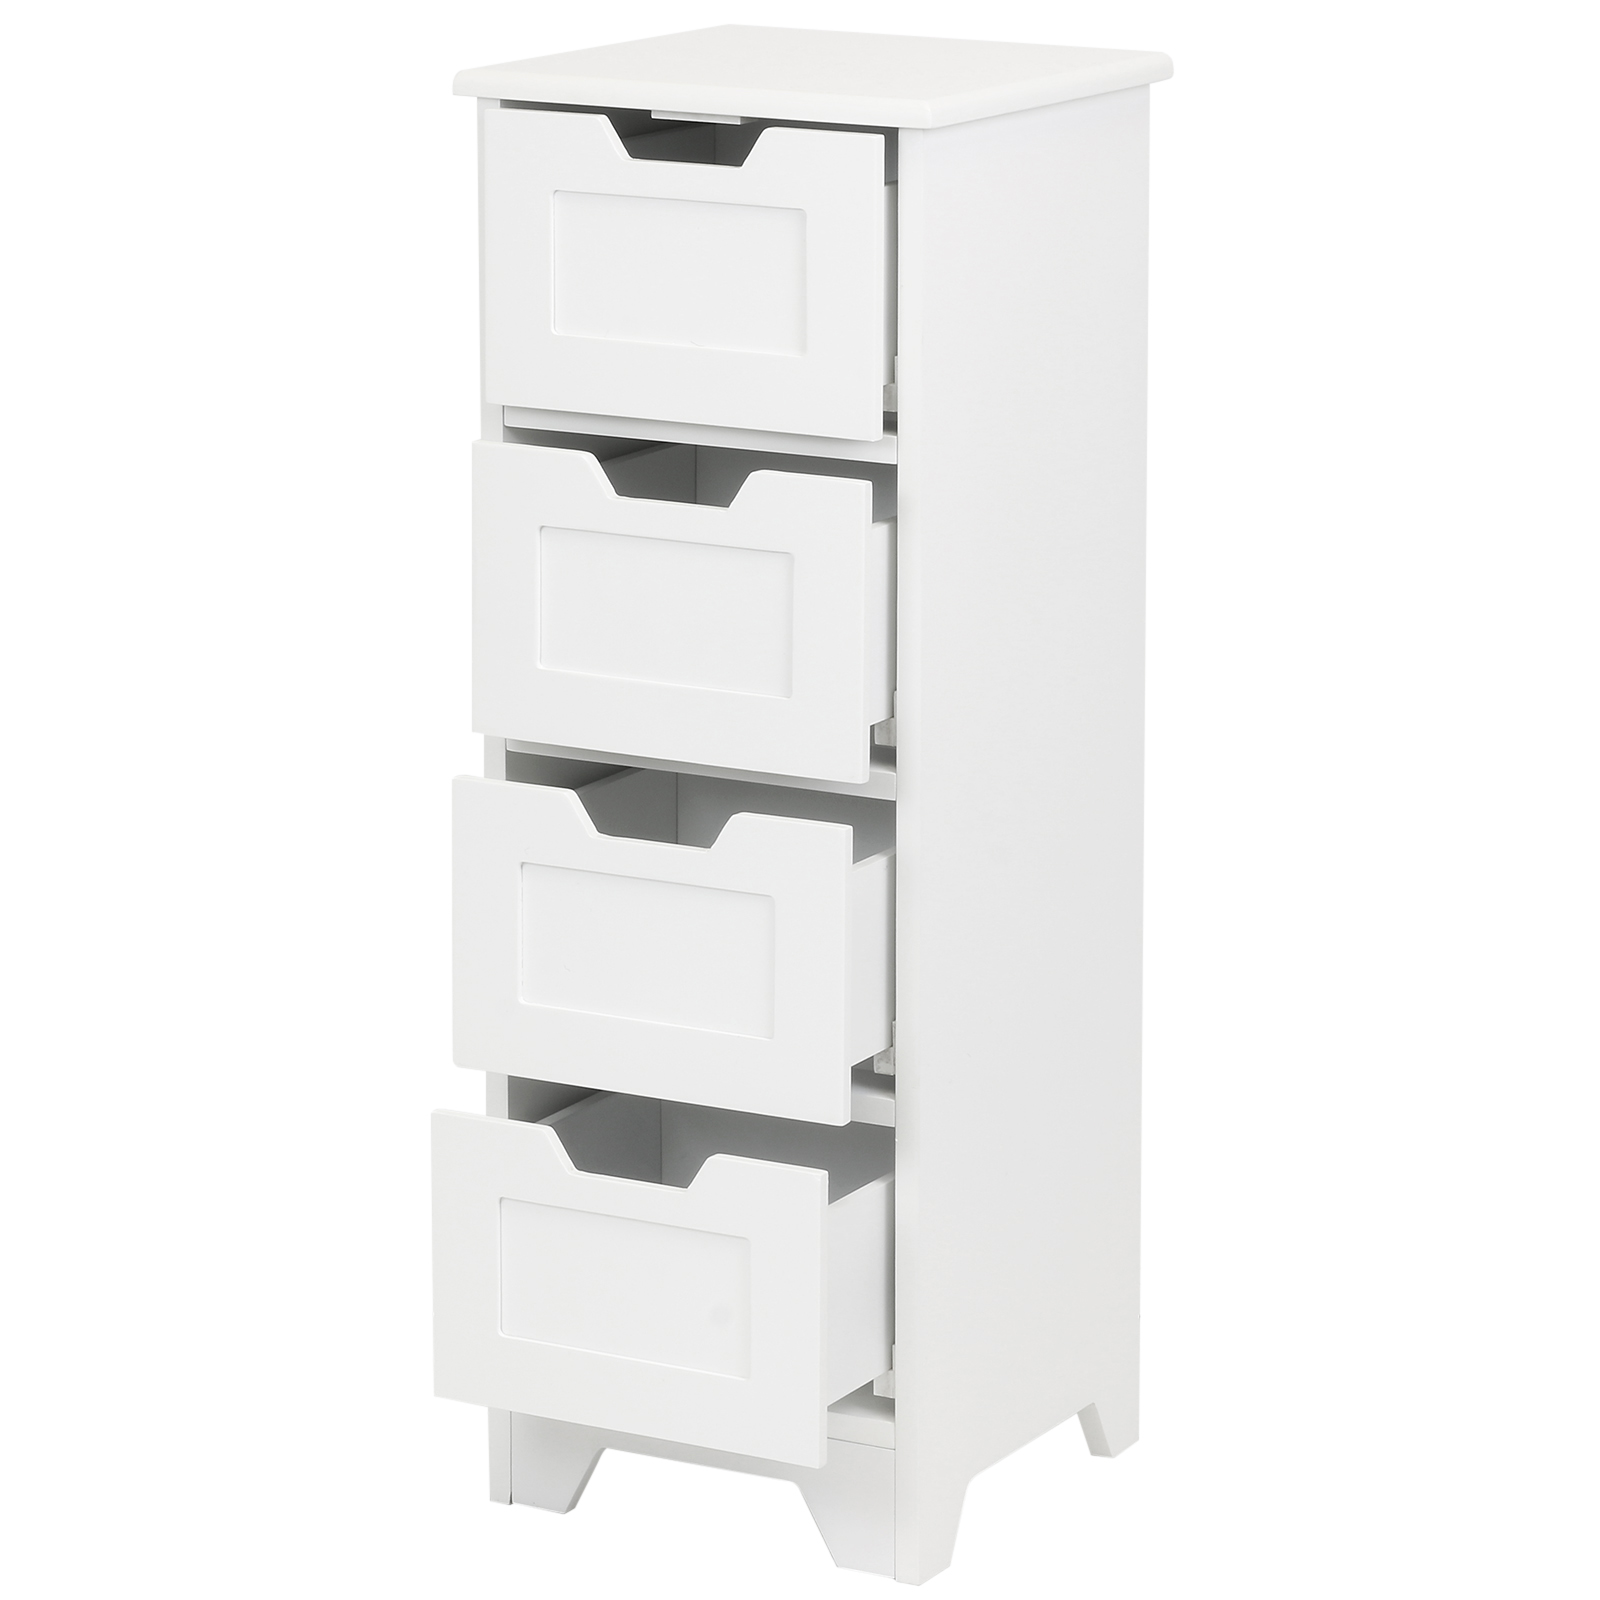 Sale white free standing 4 drawer slim bathroom cabinet for Slim bathroom cabinet